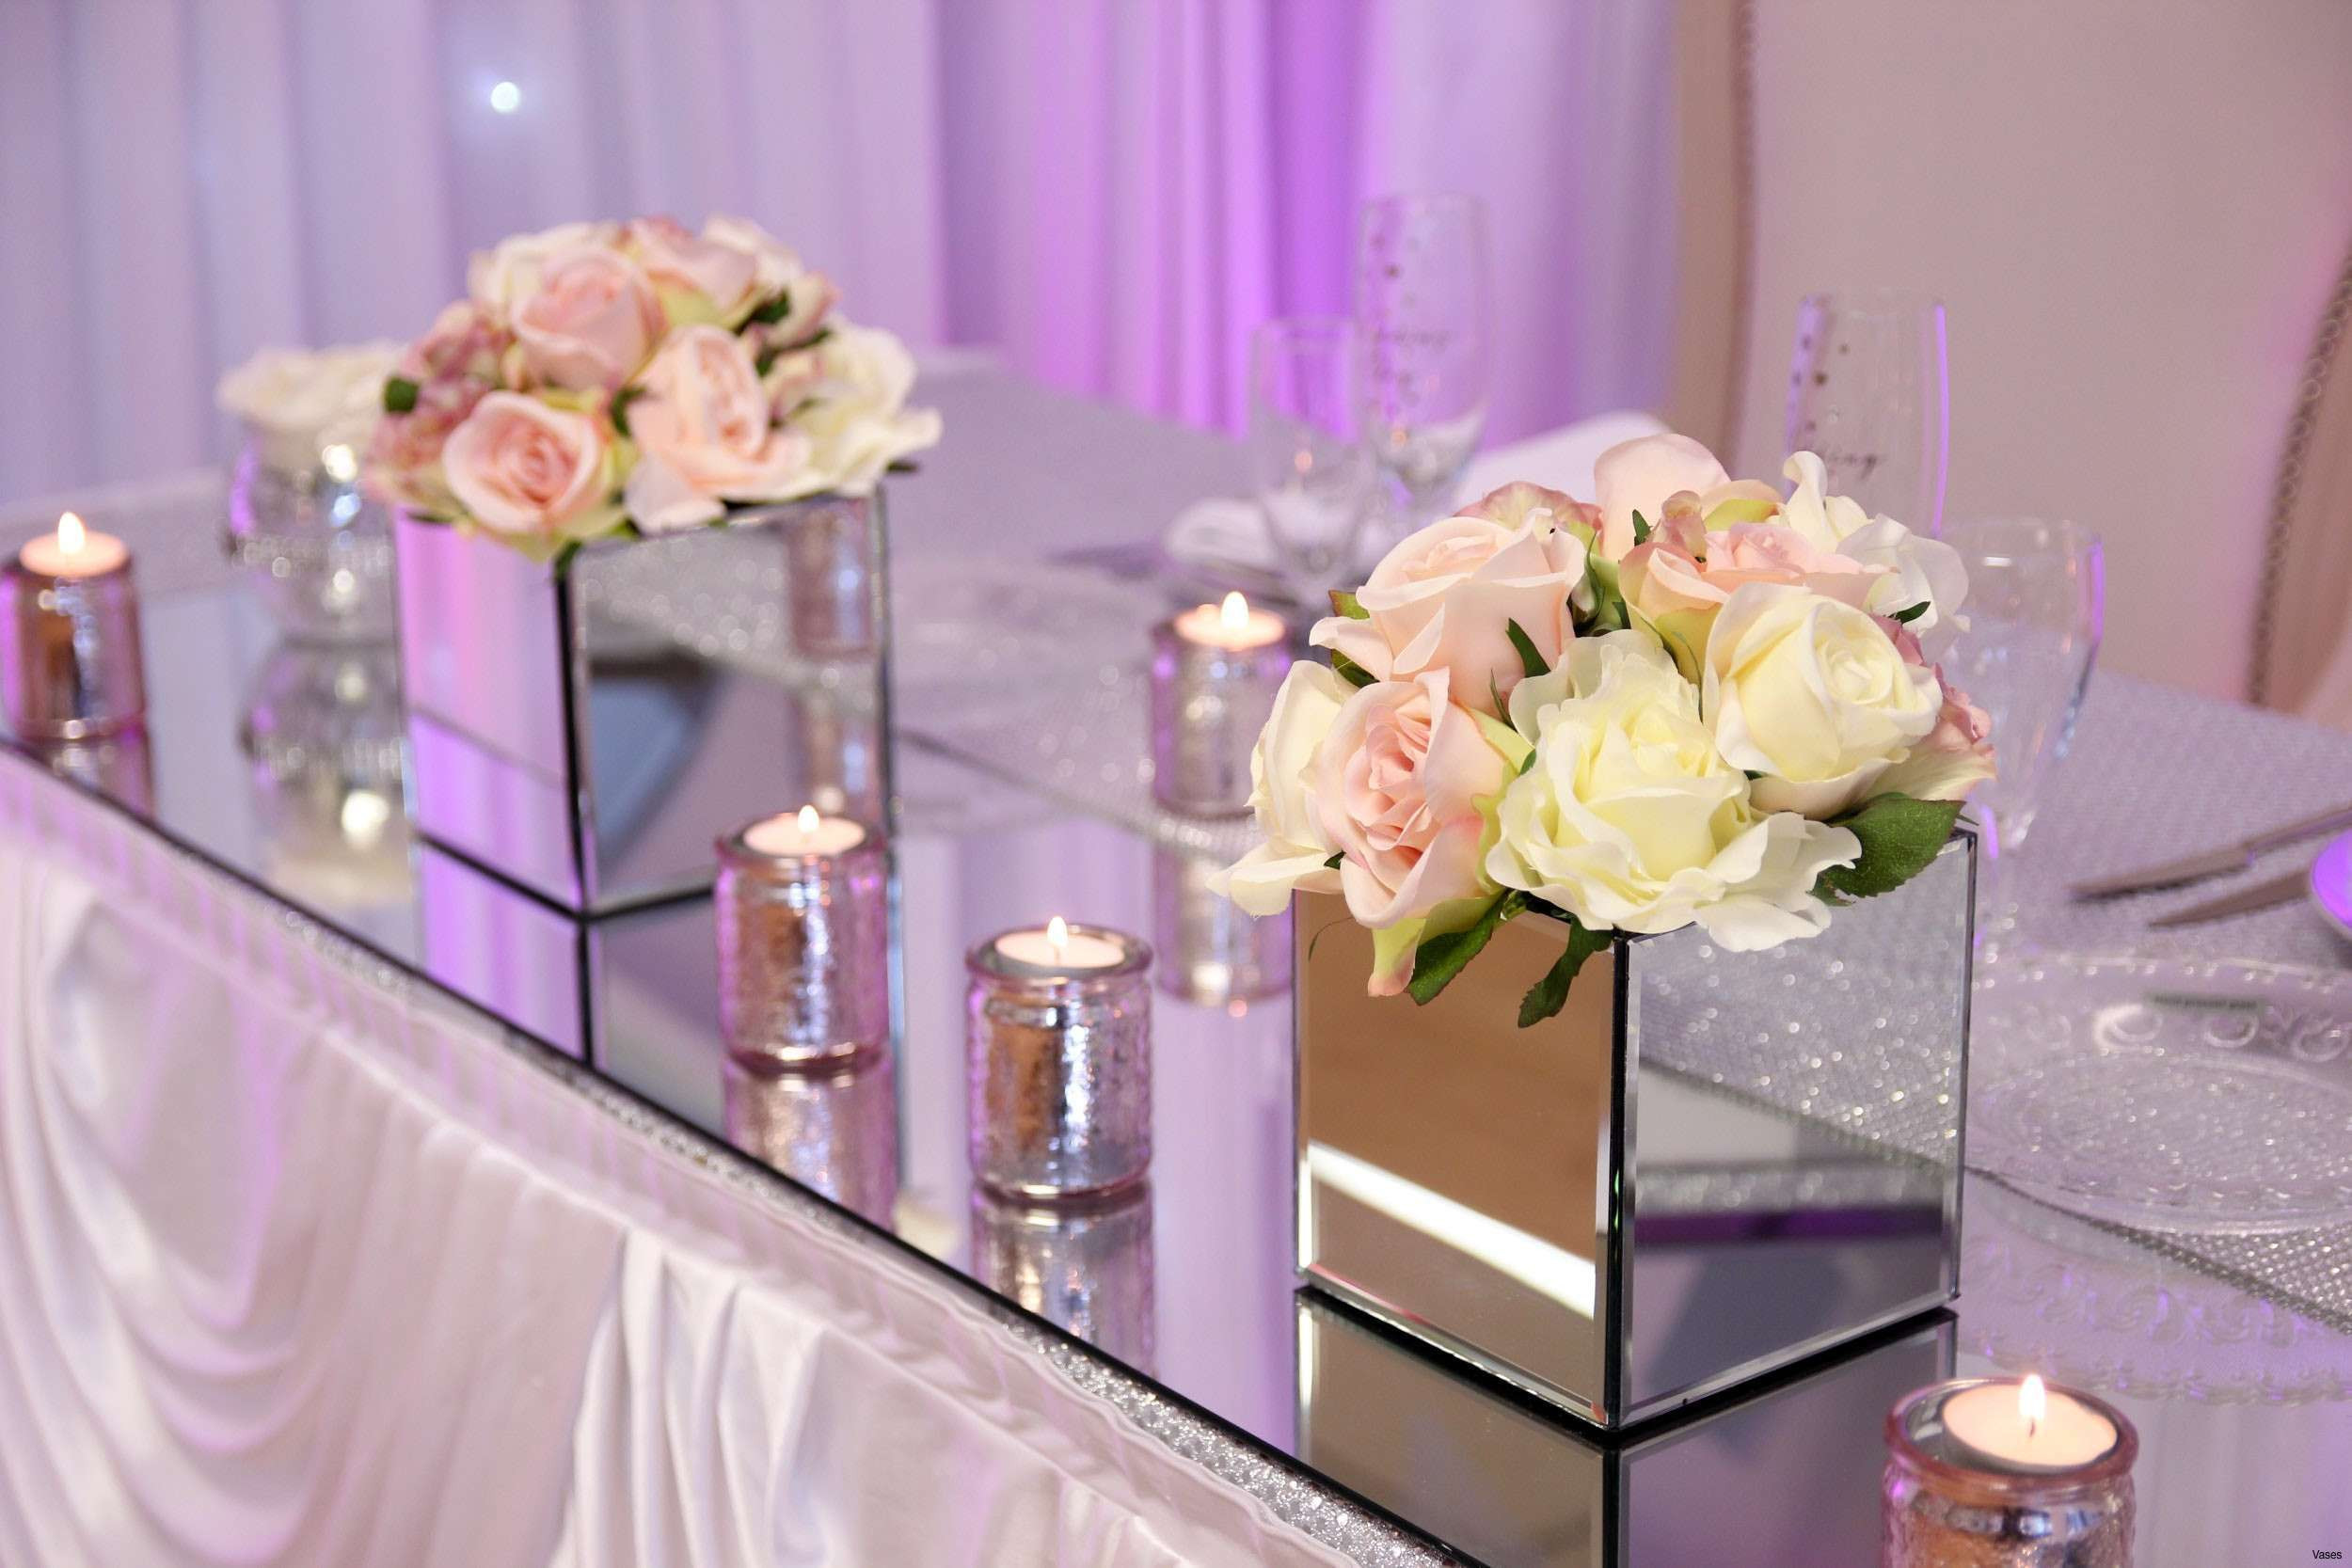 wine vase centerpiece of 26 luxury wedding centerpieces ideas sokitchenlv with wedding centerpieces ideas lovely mirrored square vase 3h vases mirror table decorationi 0d weddings of 26